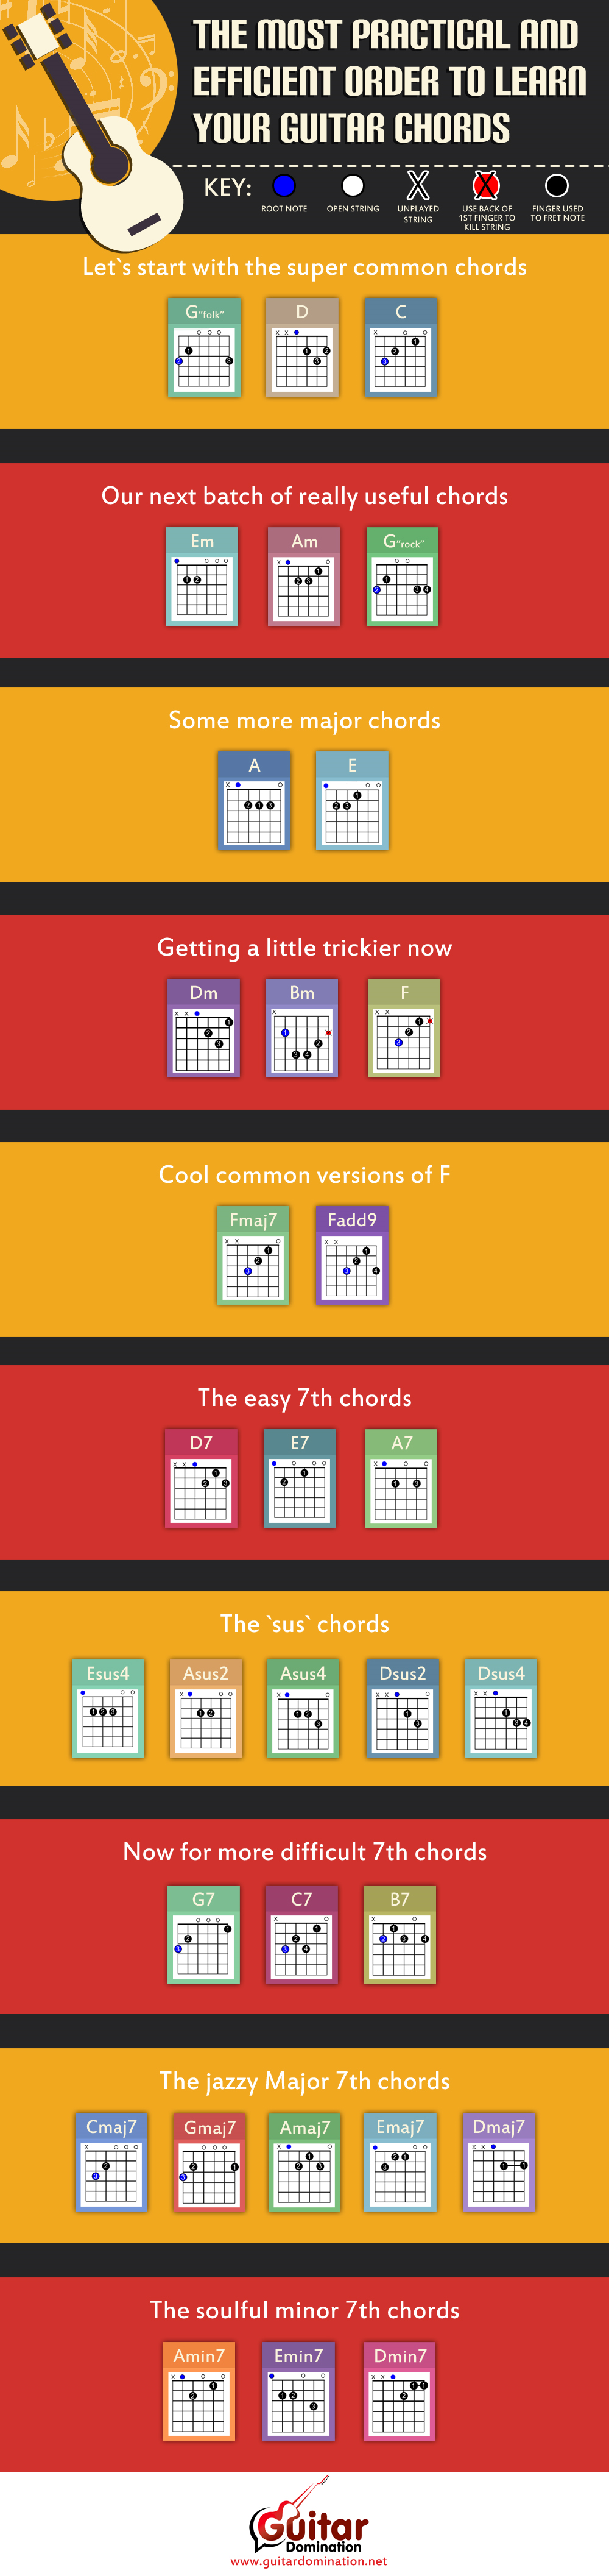 Guitar Chords Chart For Beginners How To Read Chord Diagrams Free